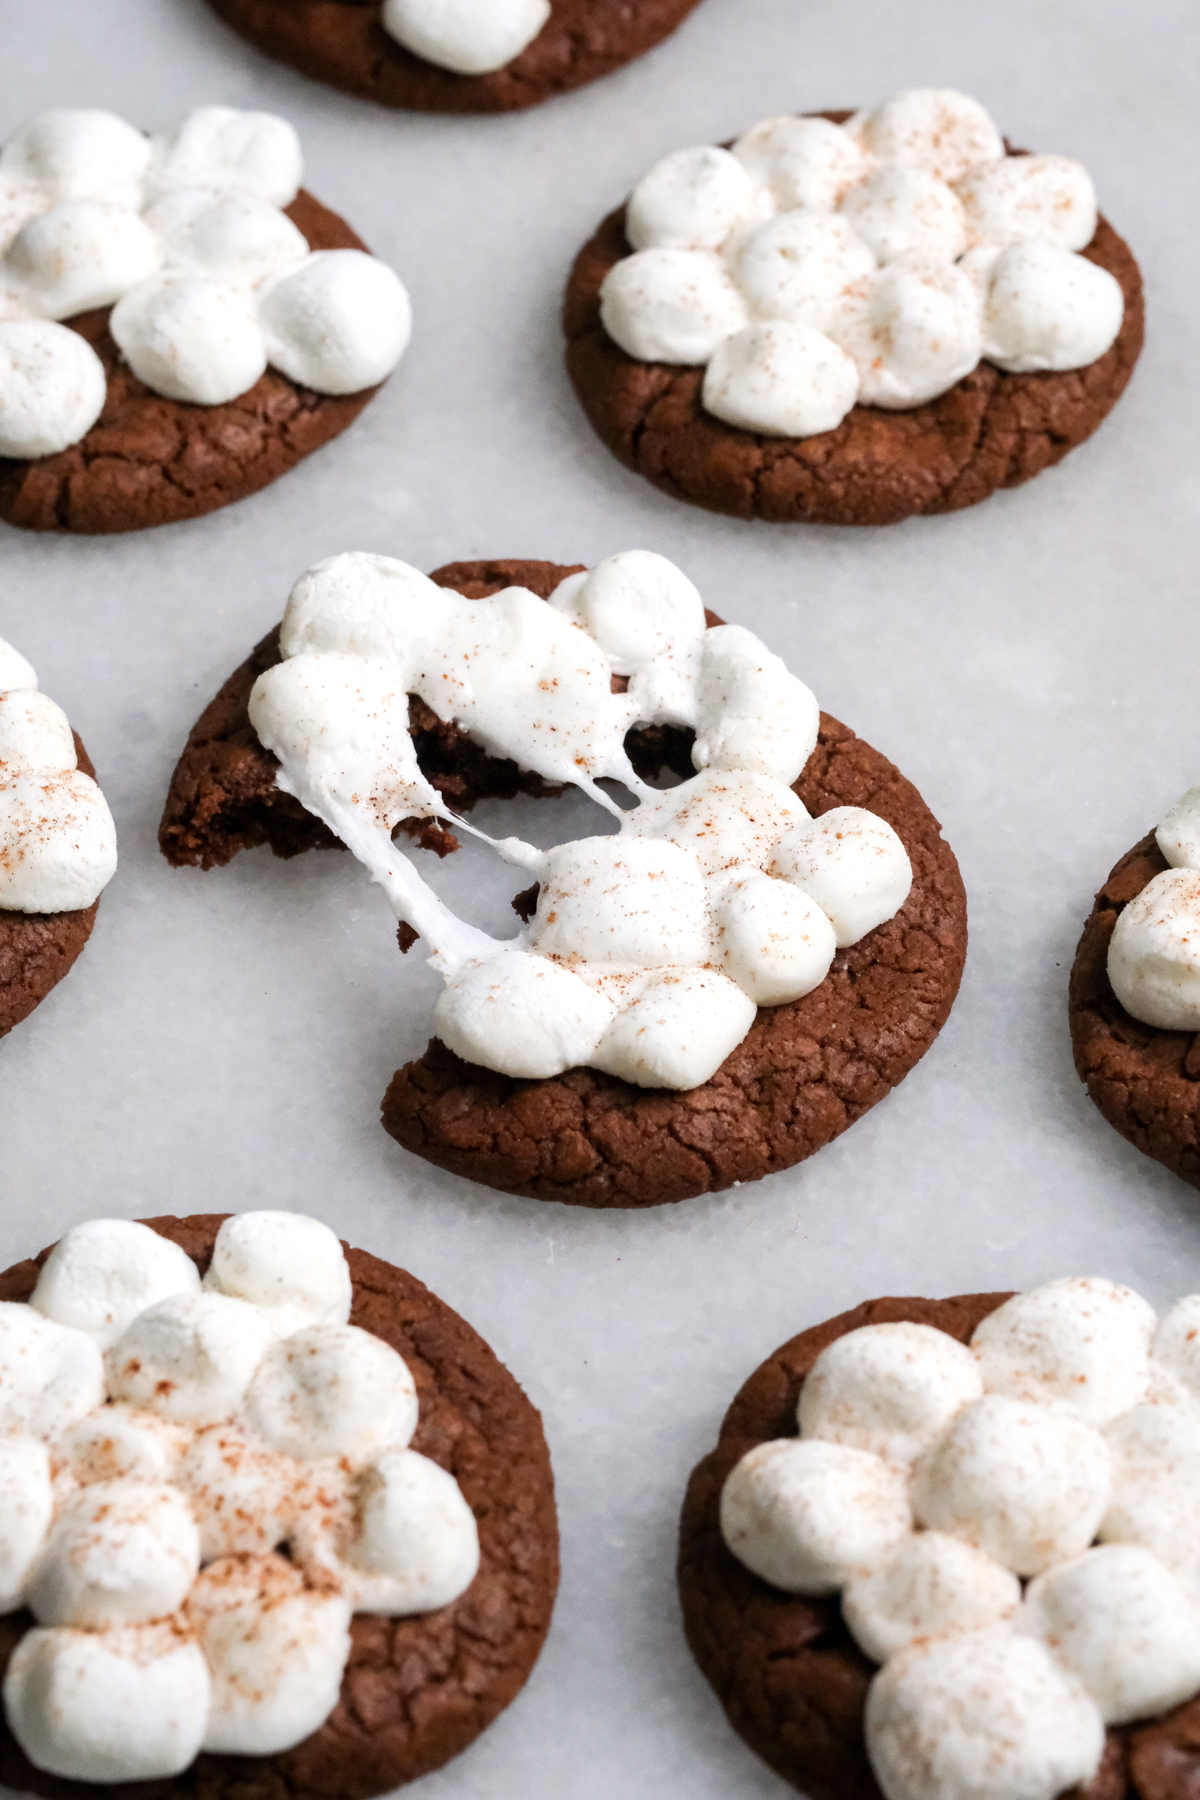 splitting a hot chocolate cookie with melted marshmallows on top